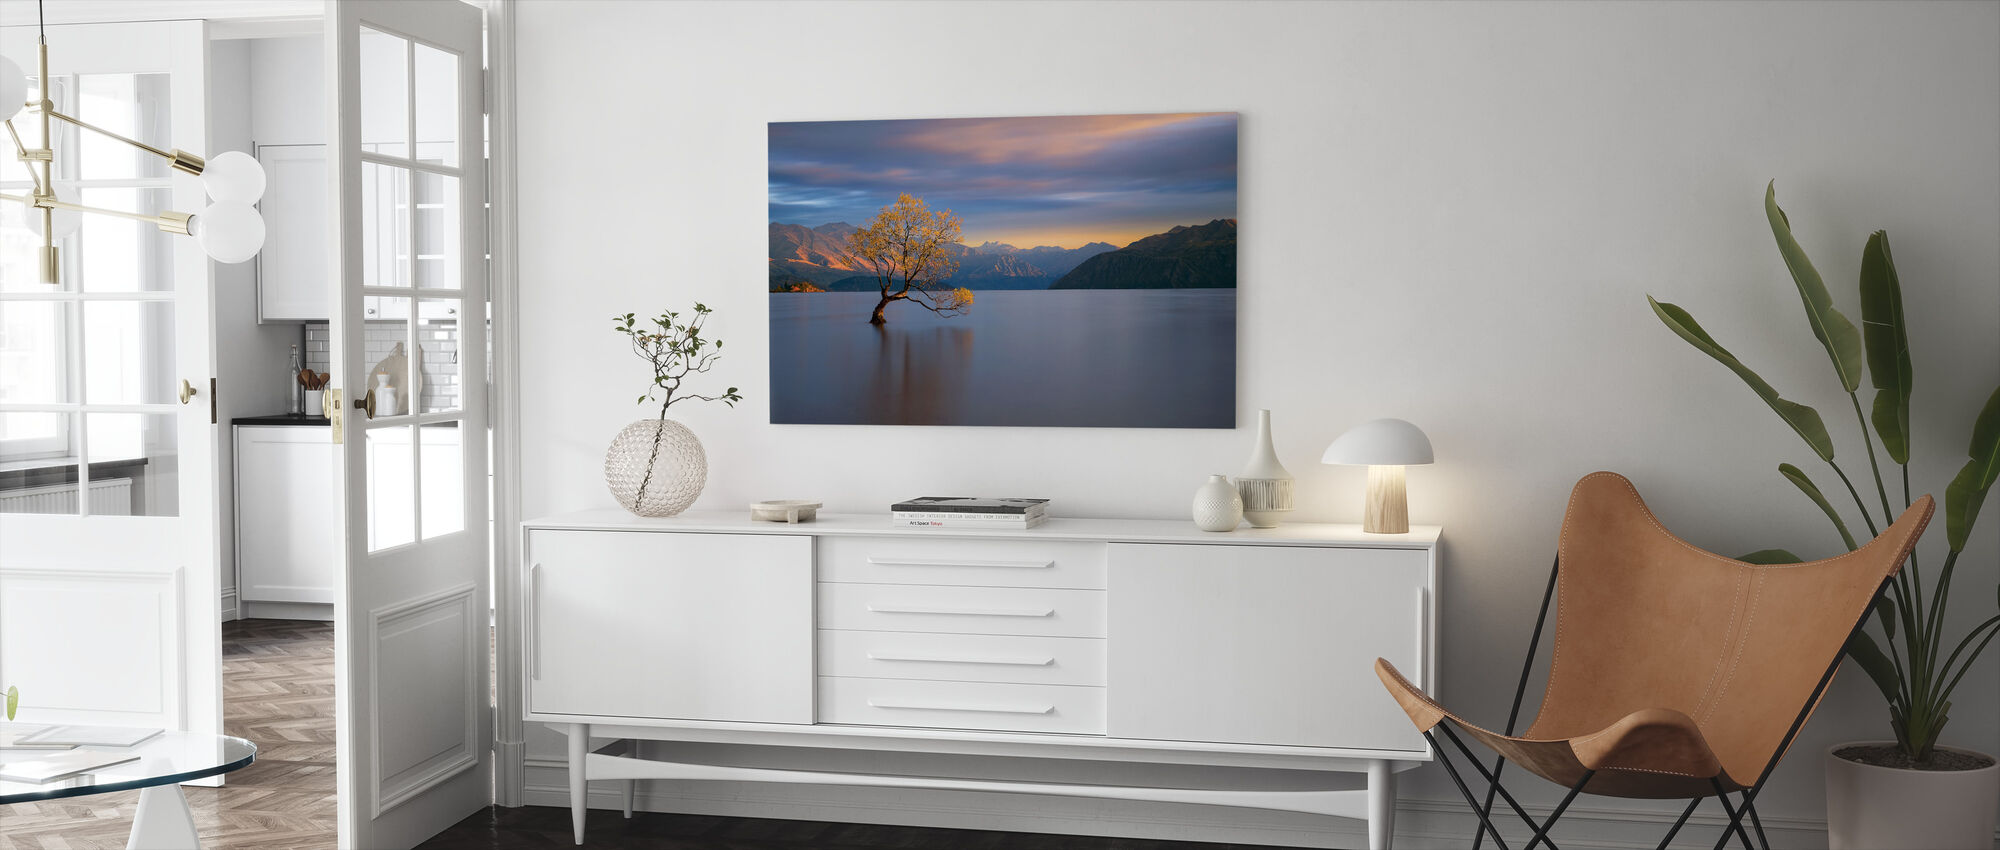 Morning Glow - Canvas print - Living Room